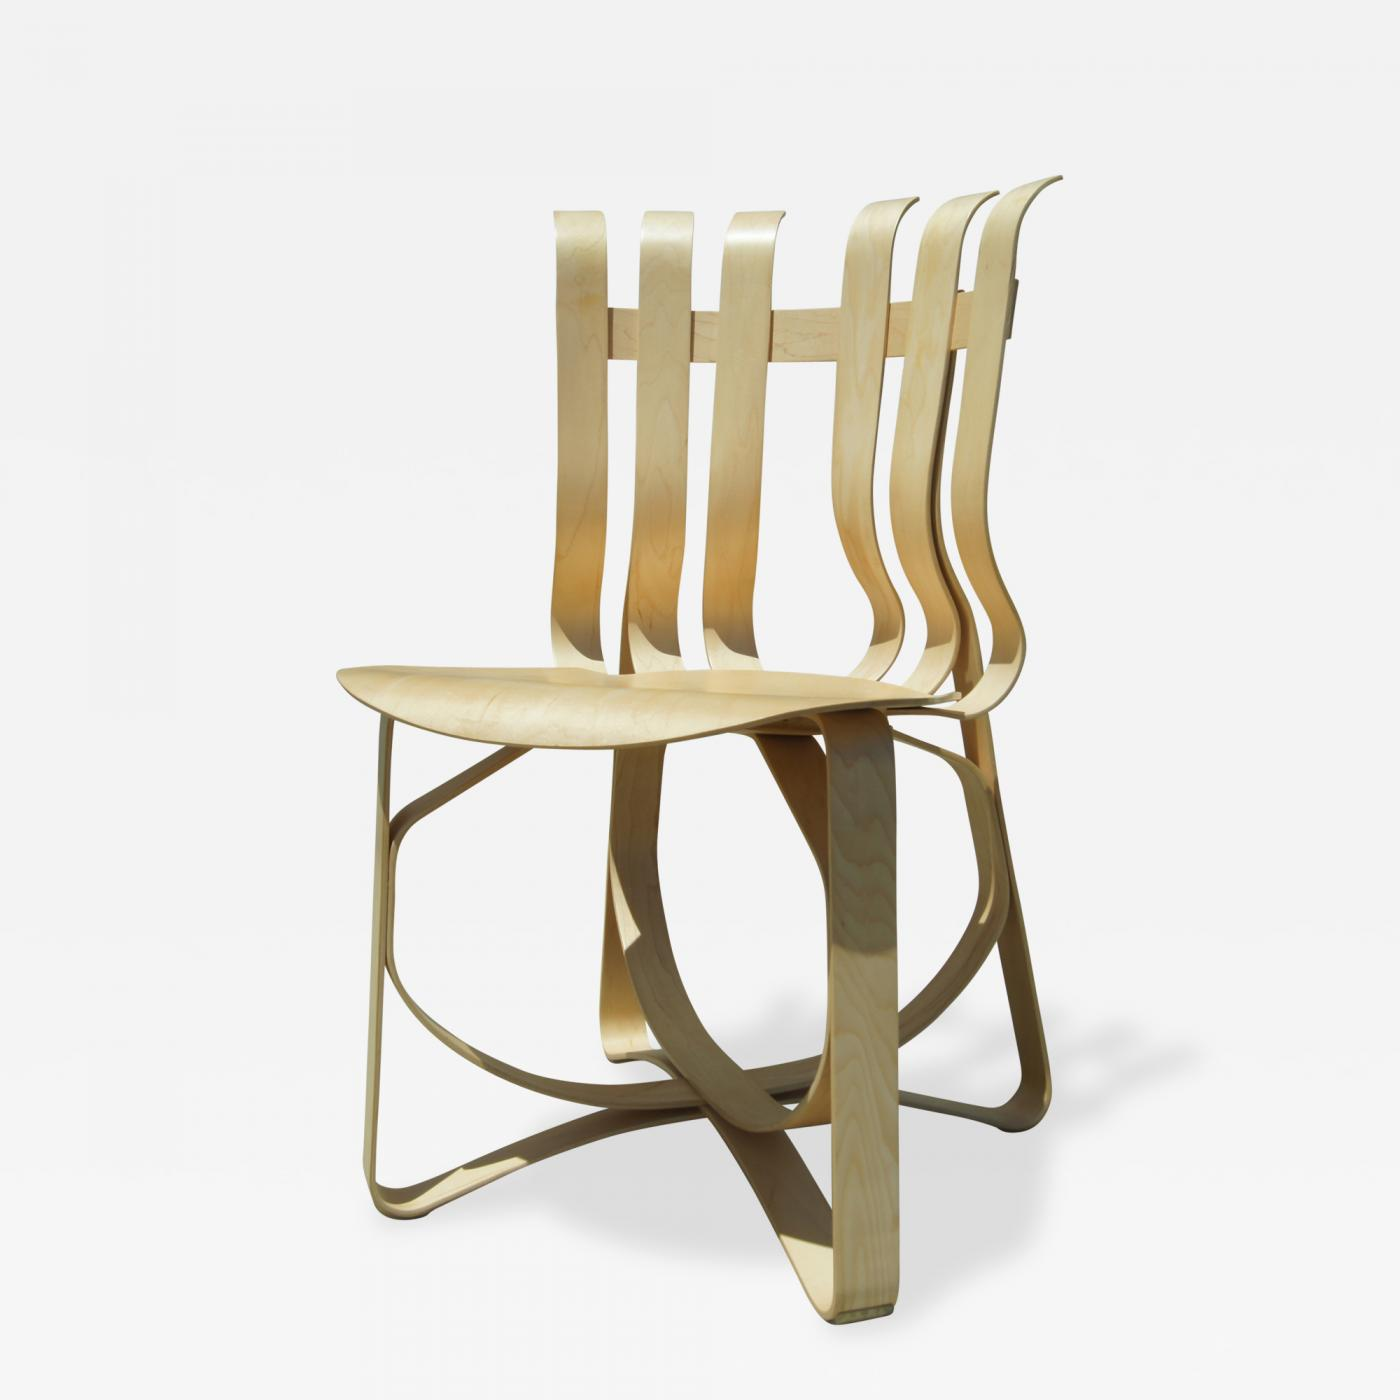 Frank Gehry - Early Hat Trick Side Chair by Frank Gehry for Knoll